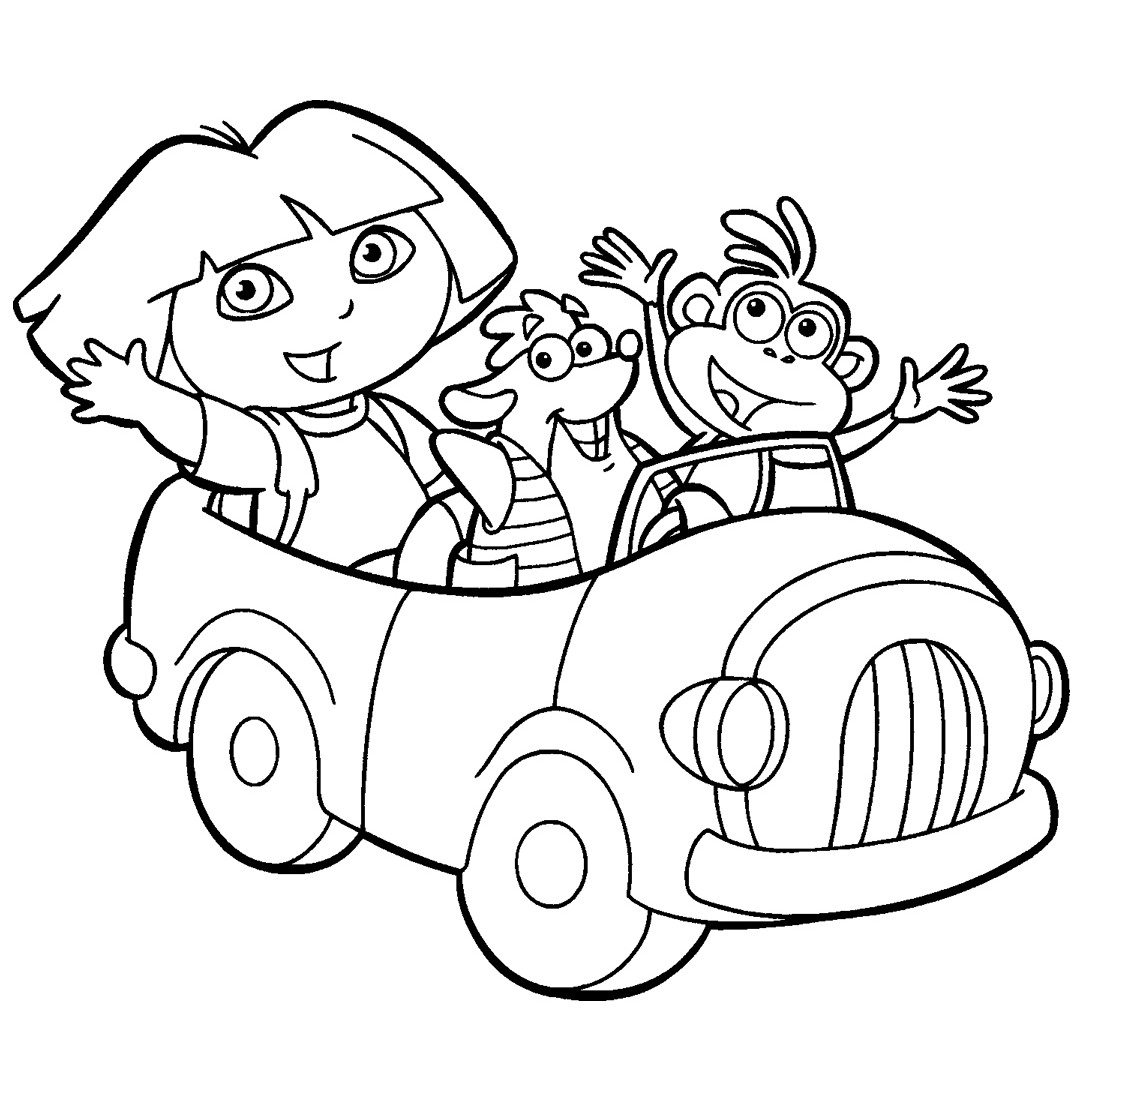 the kids coloring pages - photo #43